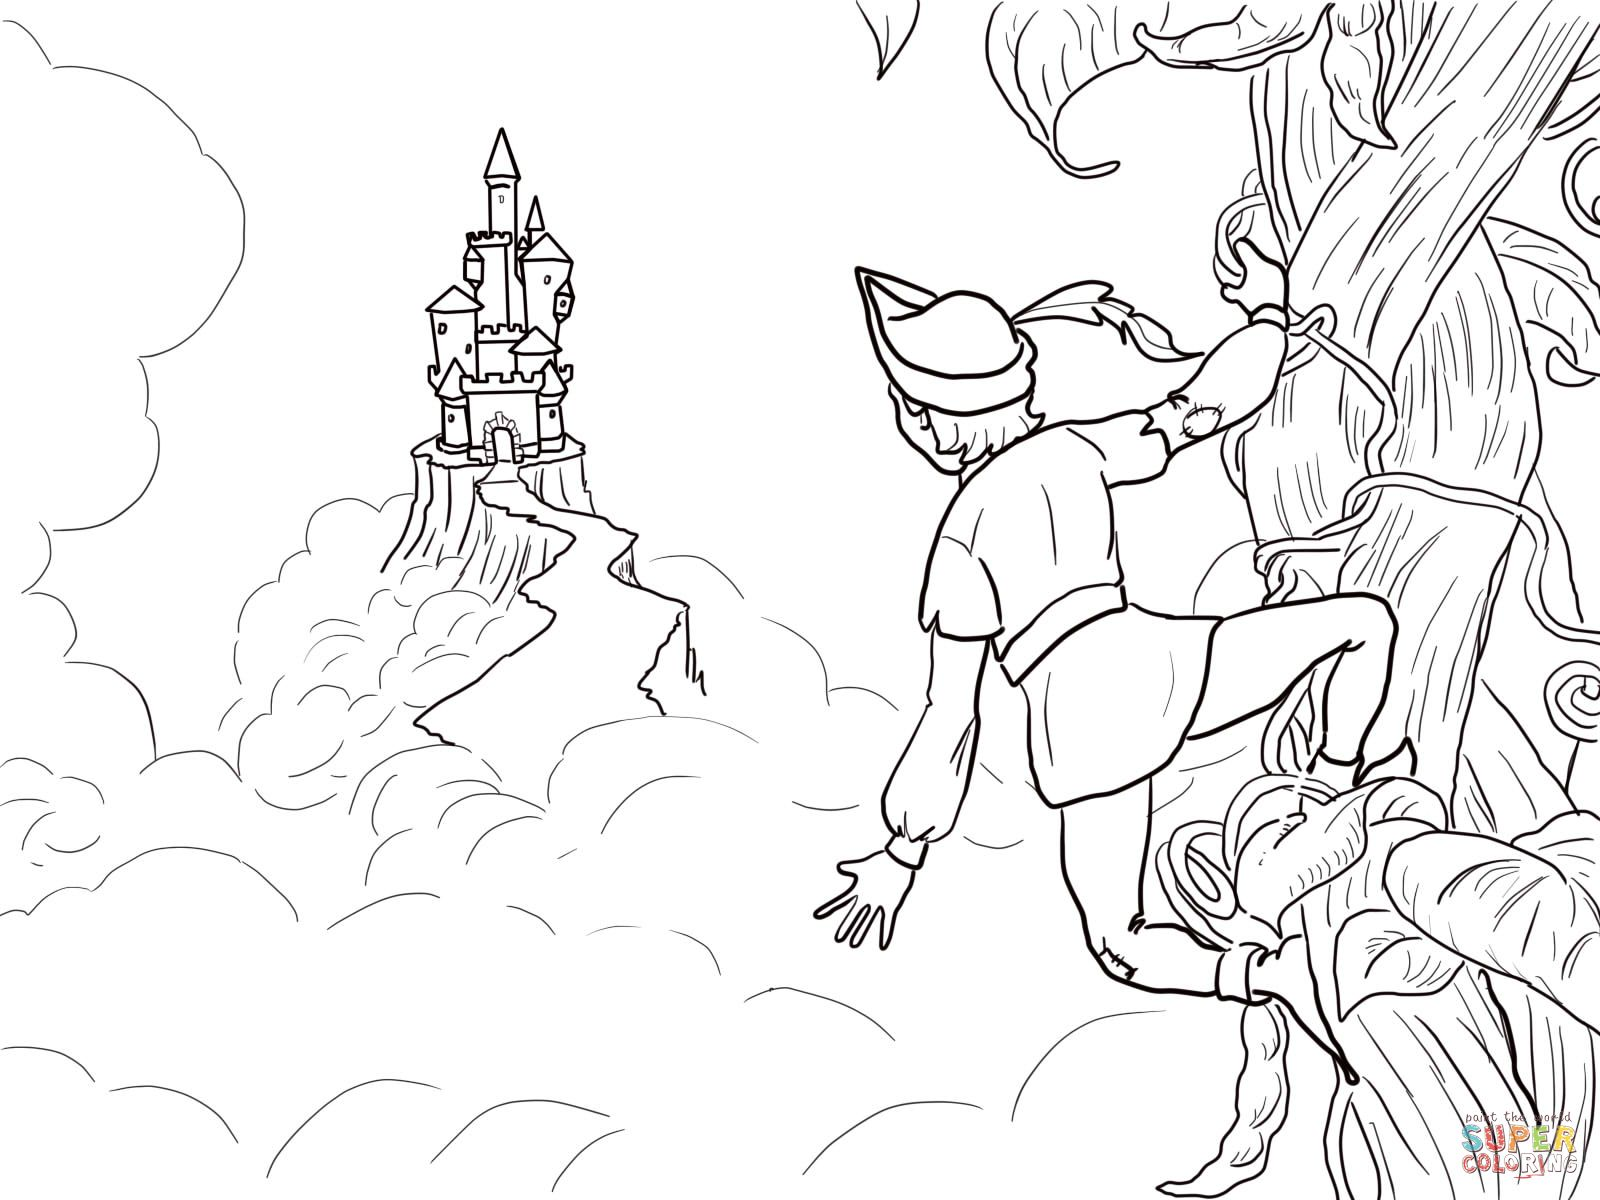 Free coloring pages for jack and the beanstalk - Jack And The Beanstalk Castle Coloring Page From Jack And The Beanstalk Category Select From 24661 Printable Crafts Of Cartoons Nature Animals